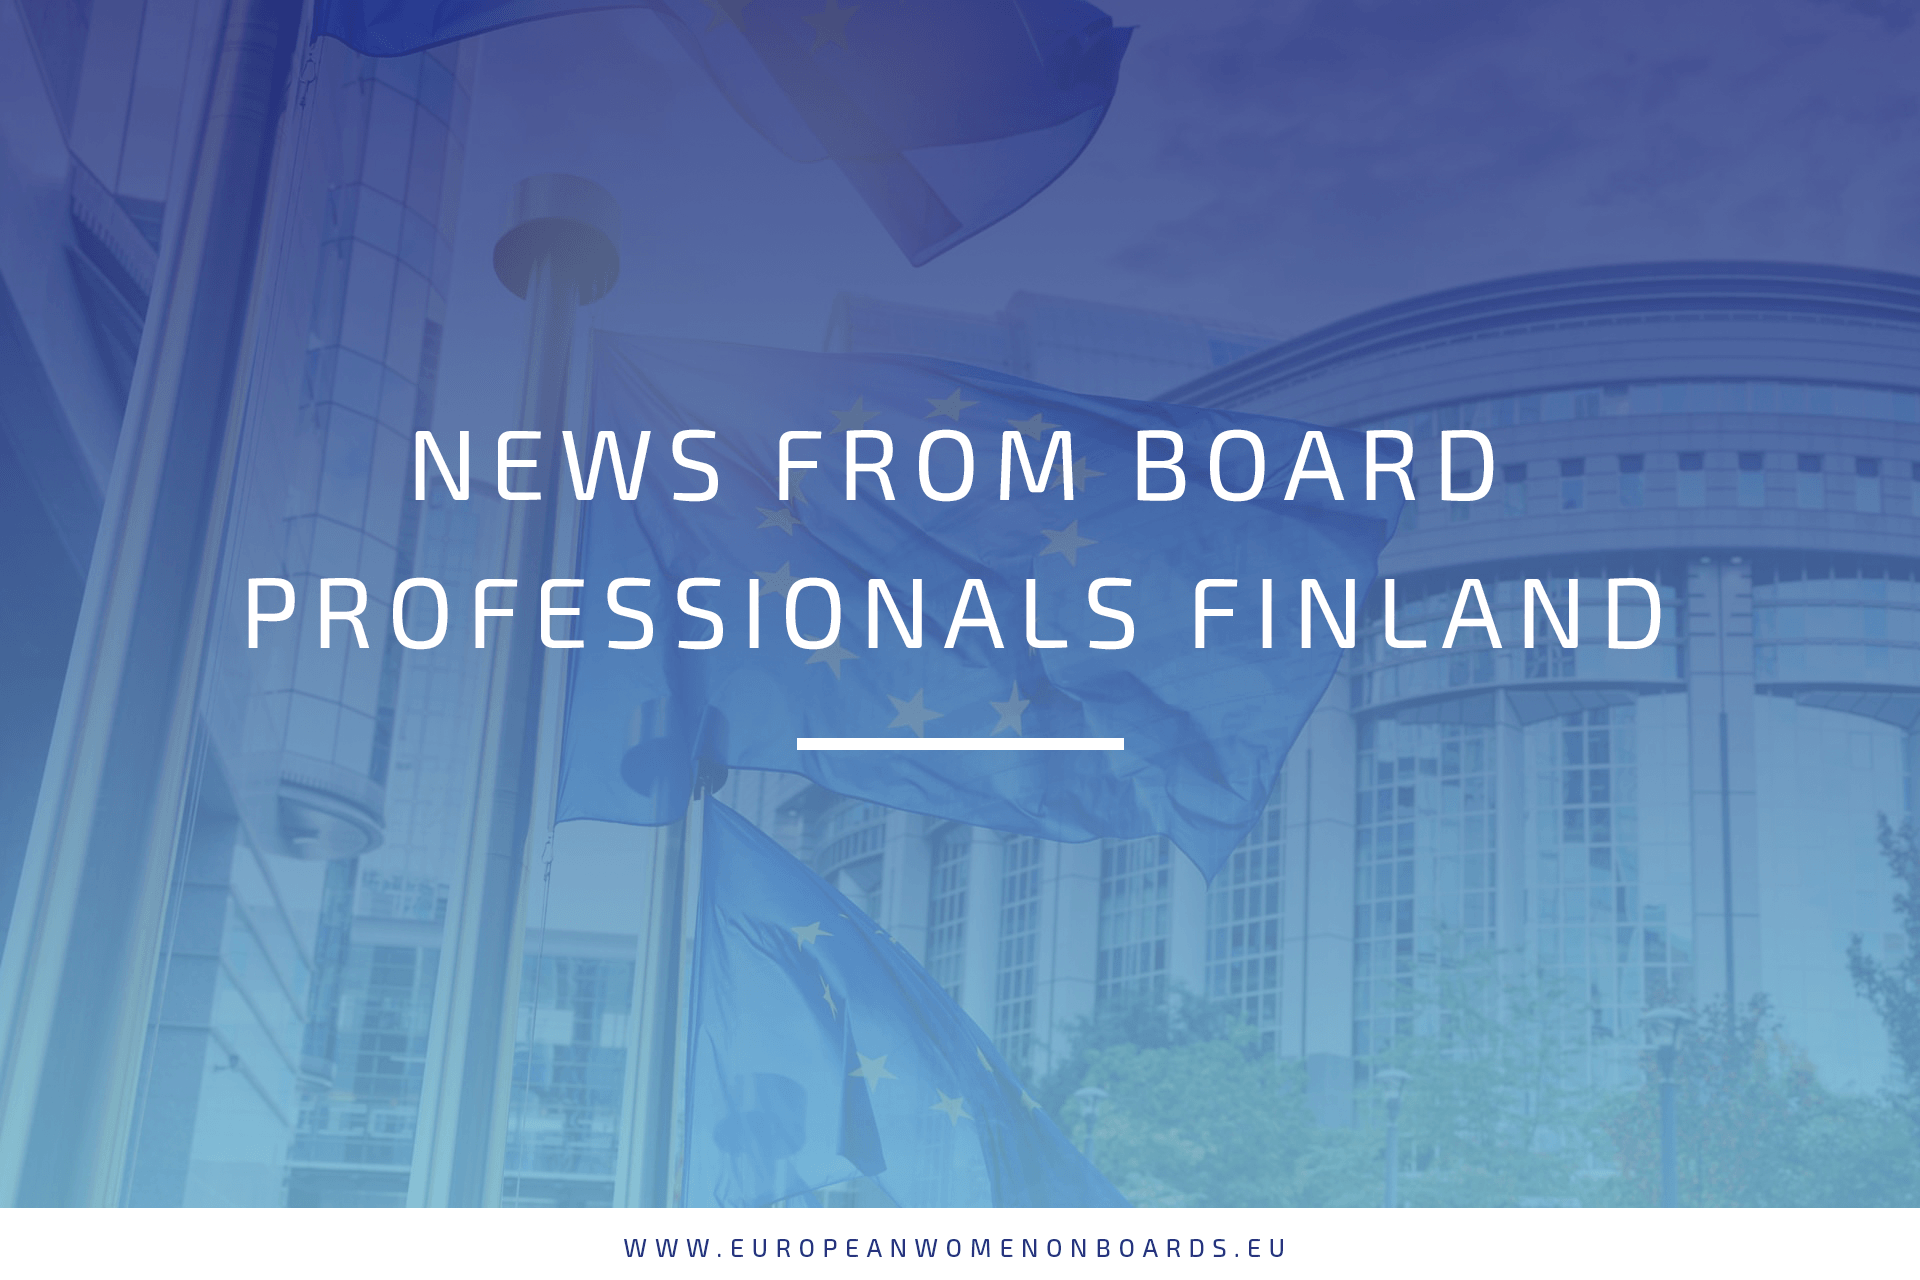 News from Board Professionals Finland